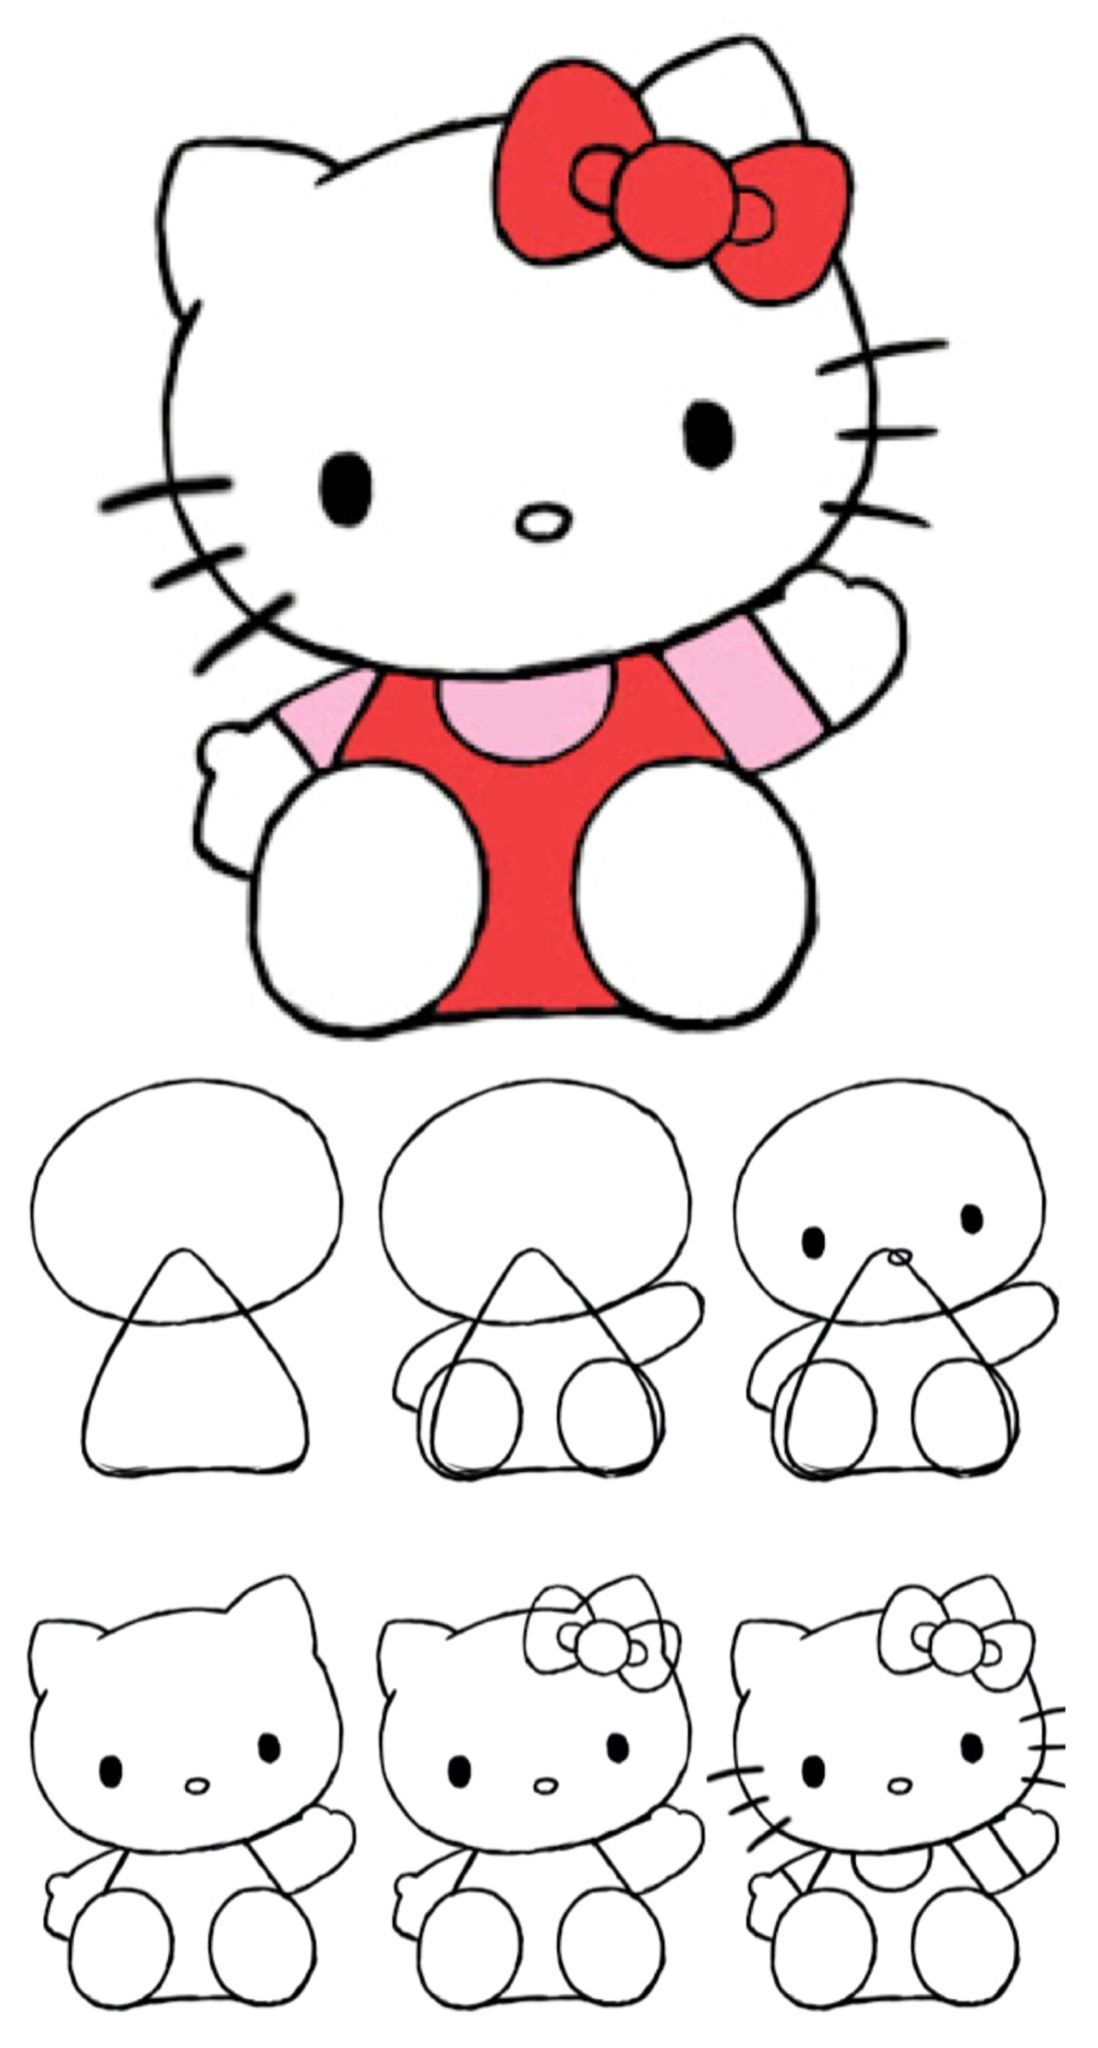 How To Draw Hello Kitty Doodles Pinterest Hello Kitty Drawing